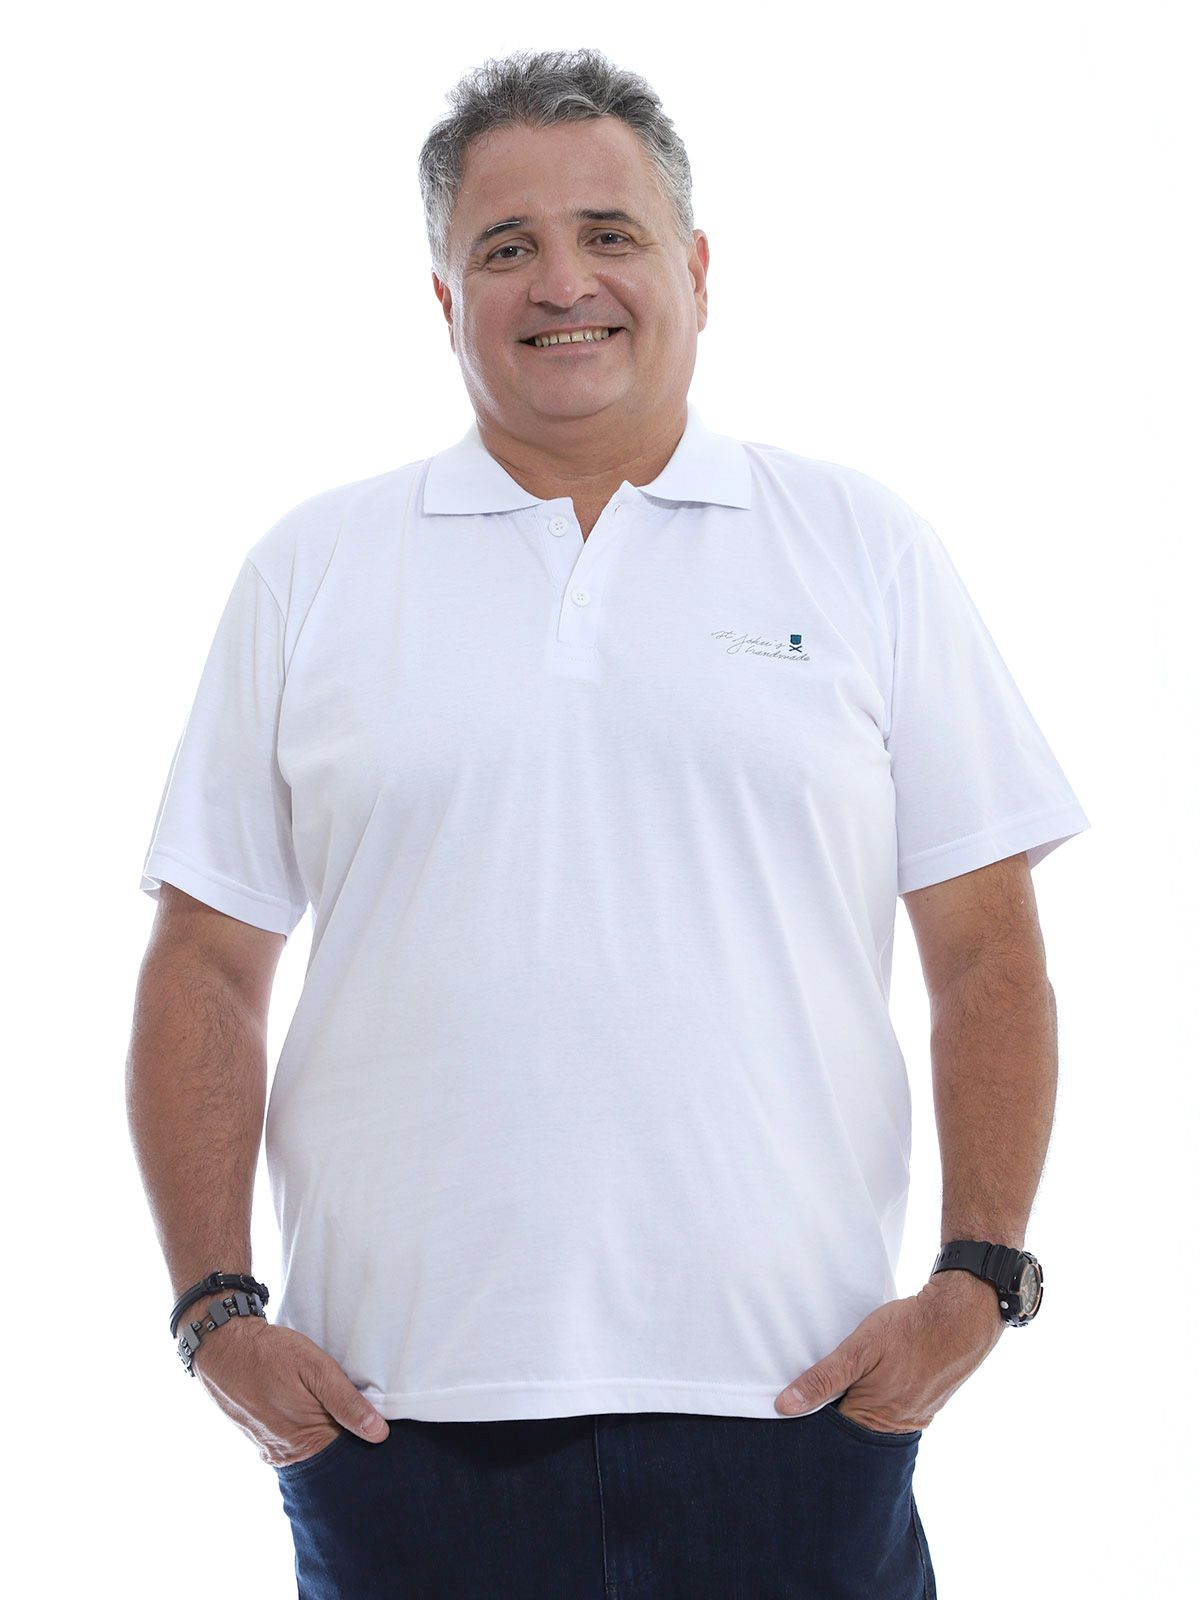 Camisa Polo Plus Size Bordado Branco